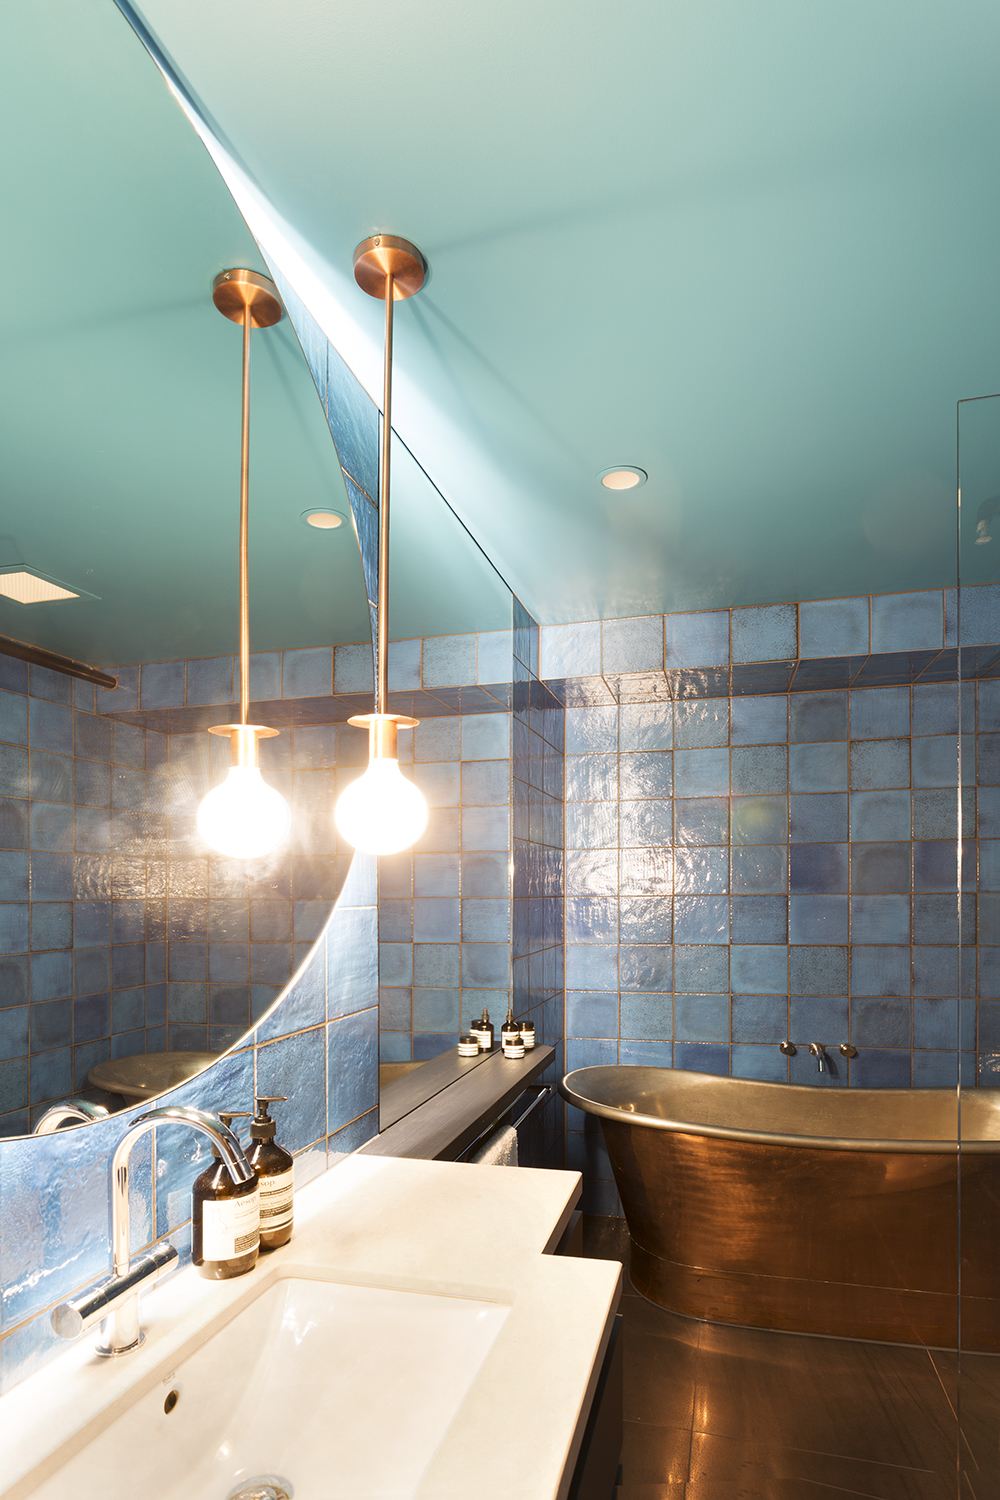 Bathroom design Melbourne interior decorator melbourne